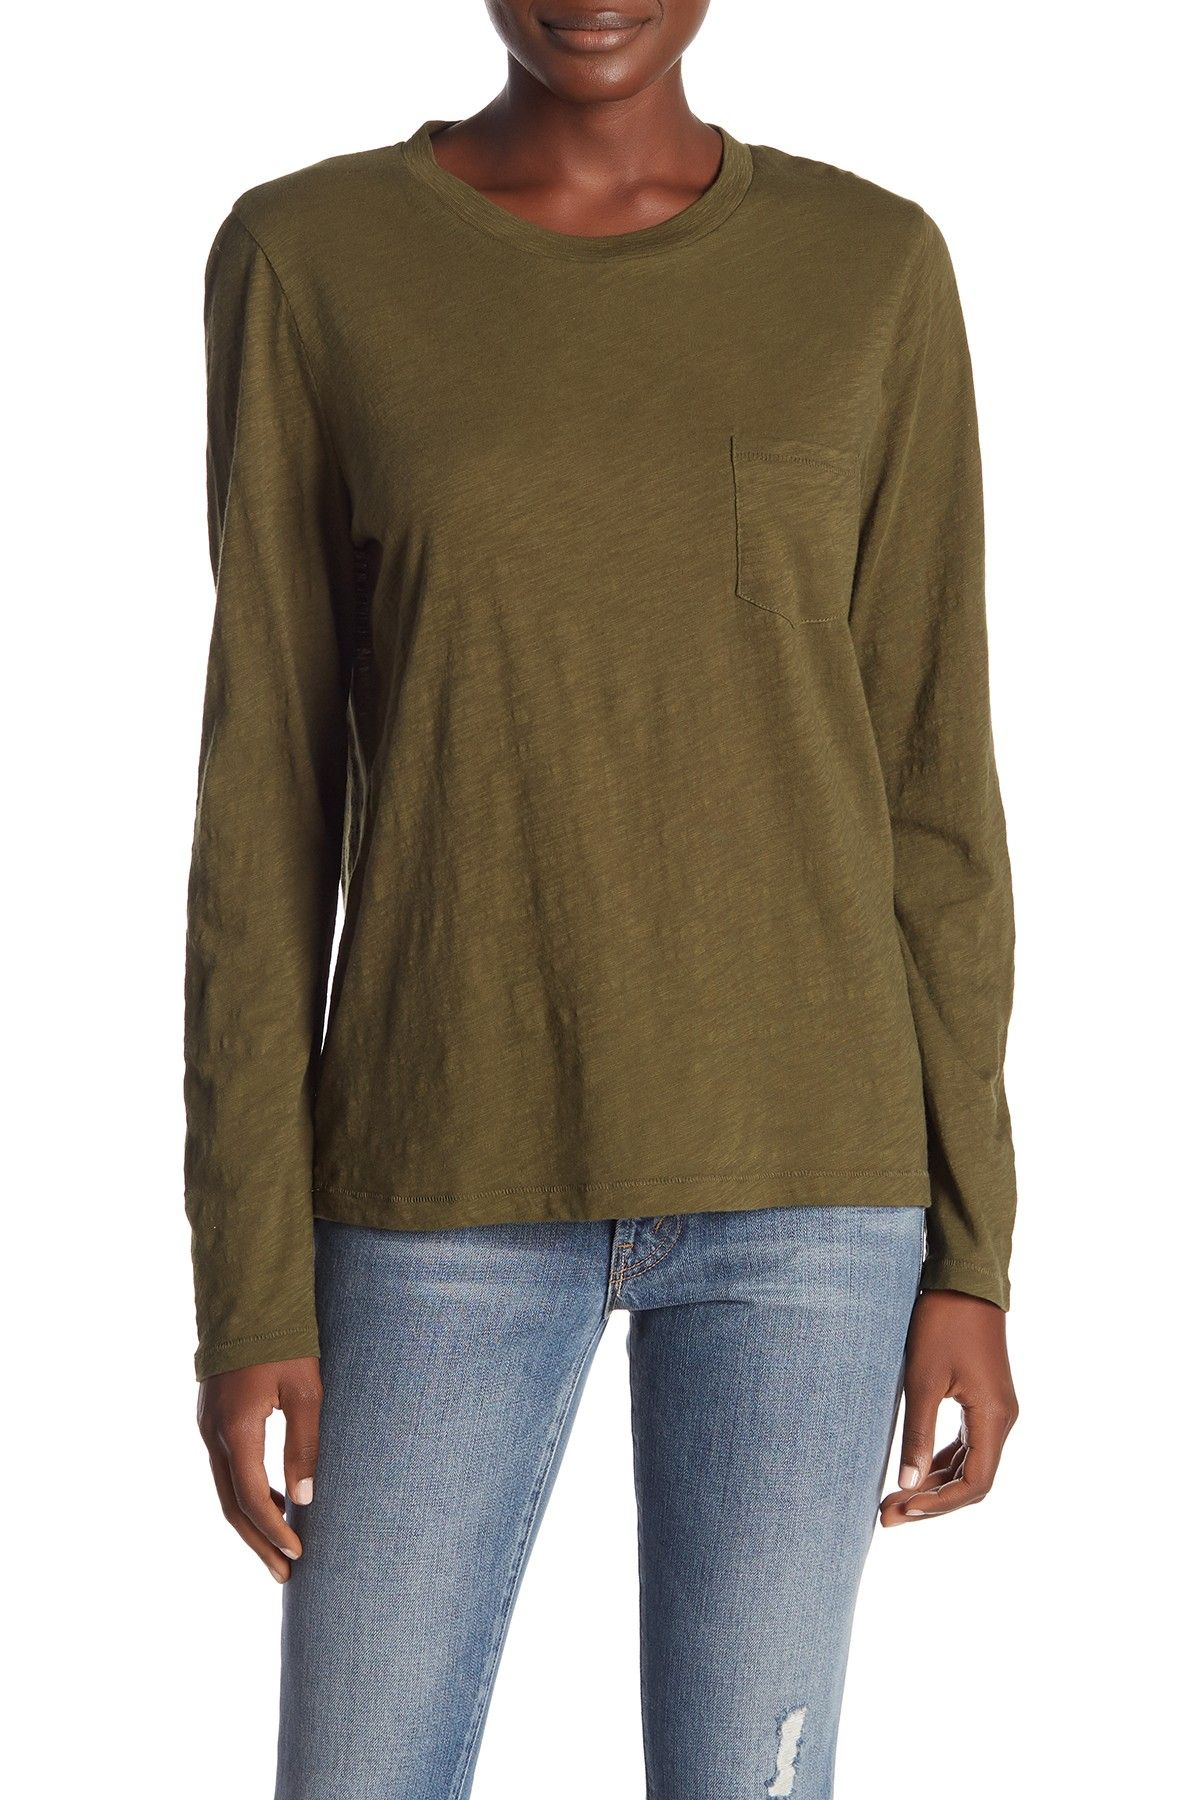 35a3424c6 Madewell | Long Sleeve Crew Neck Tee in 2019 | Nordstrom Rack ...